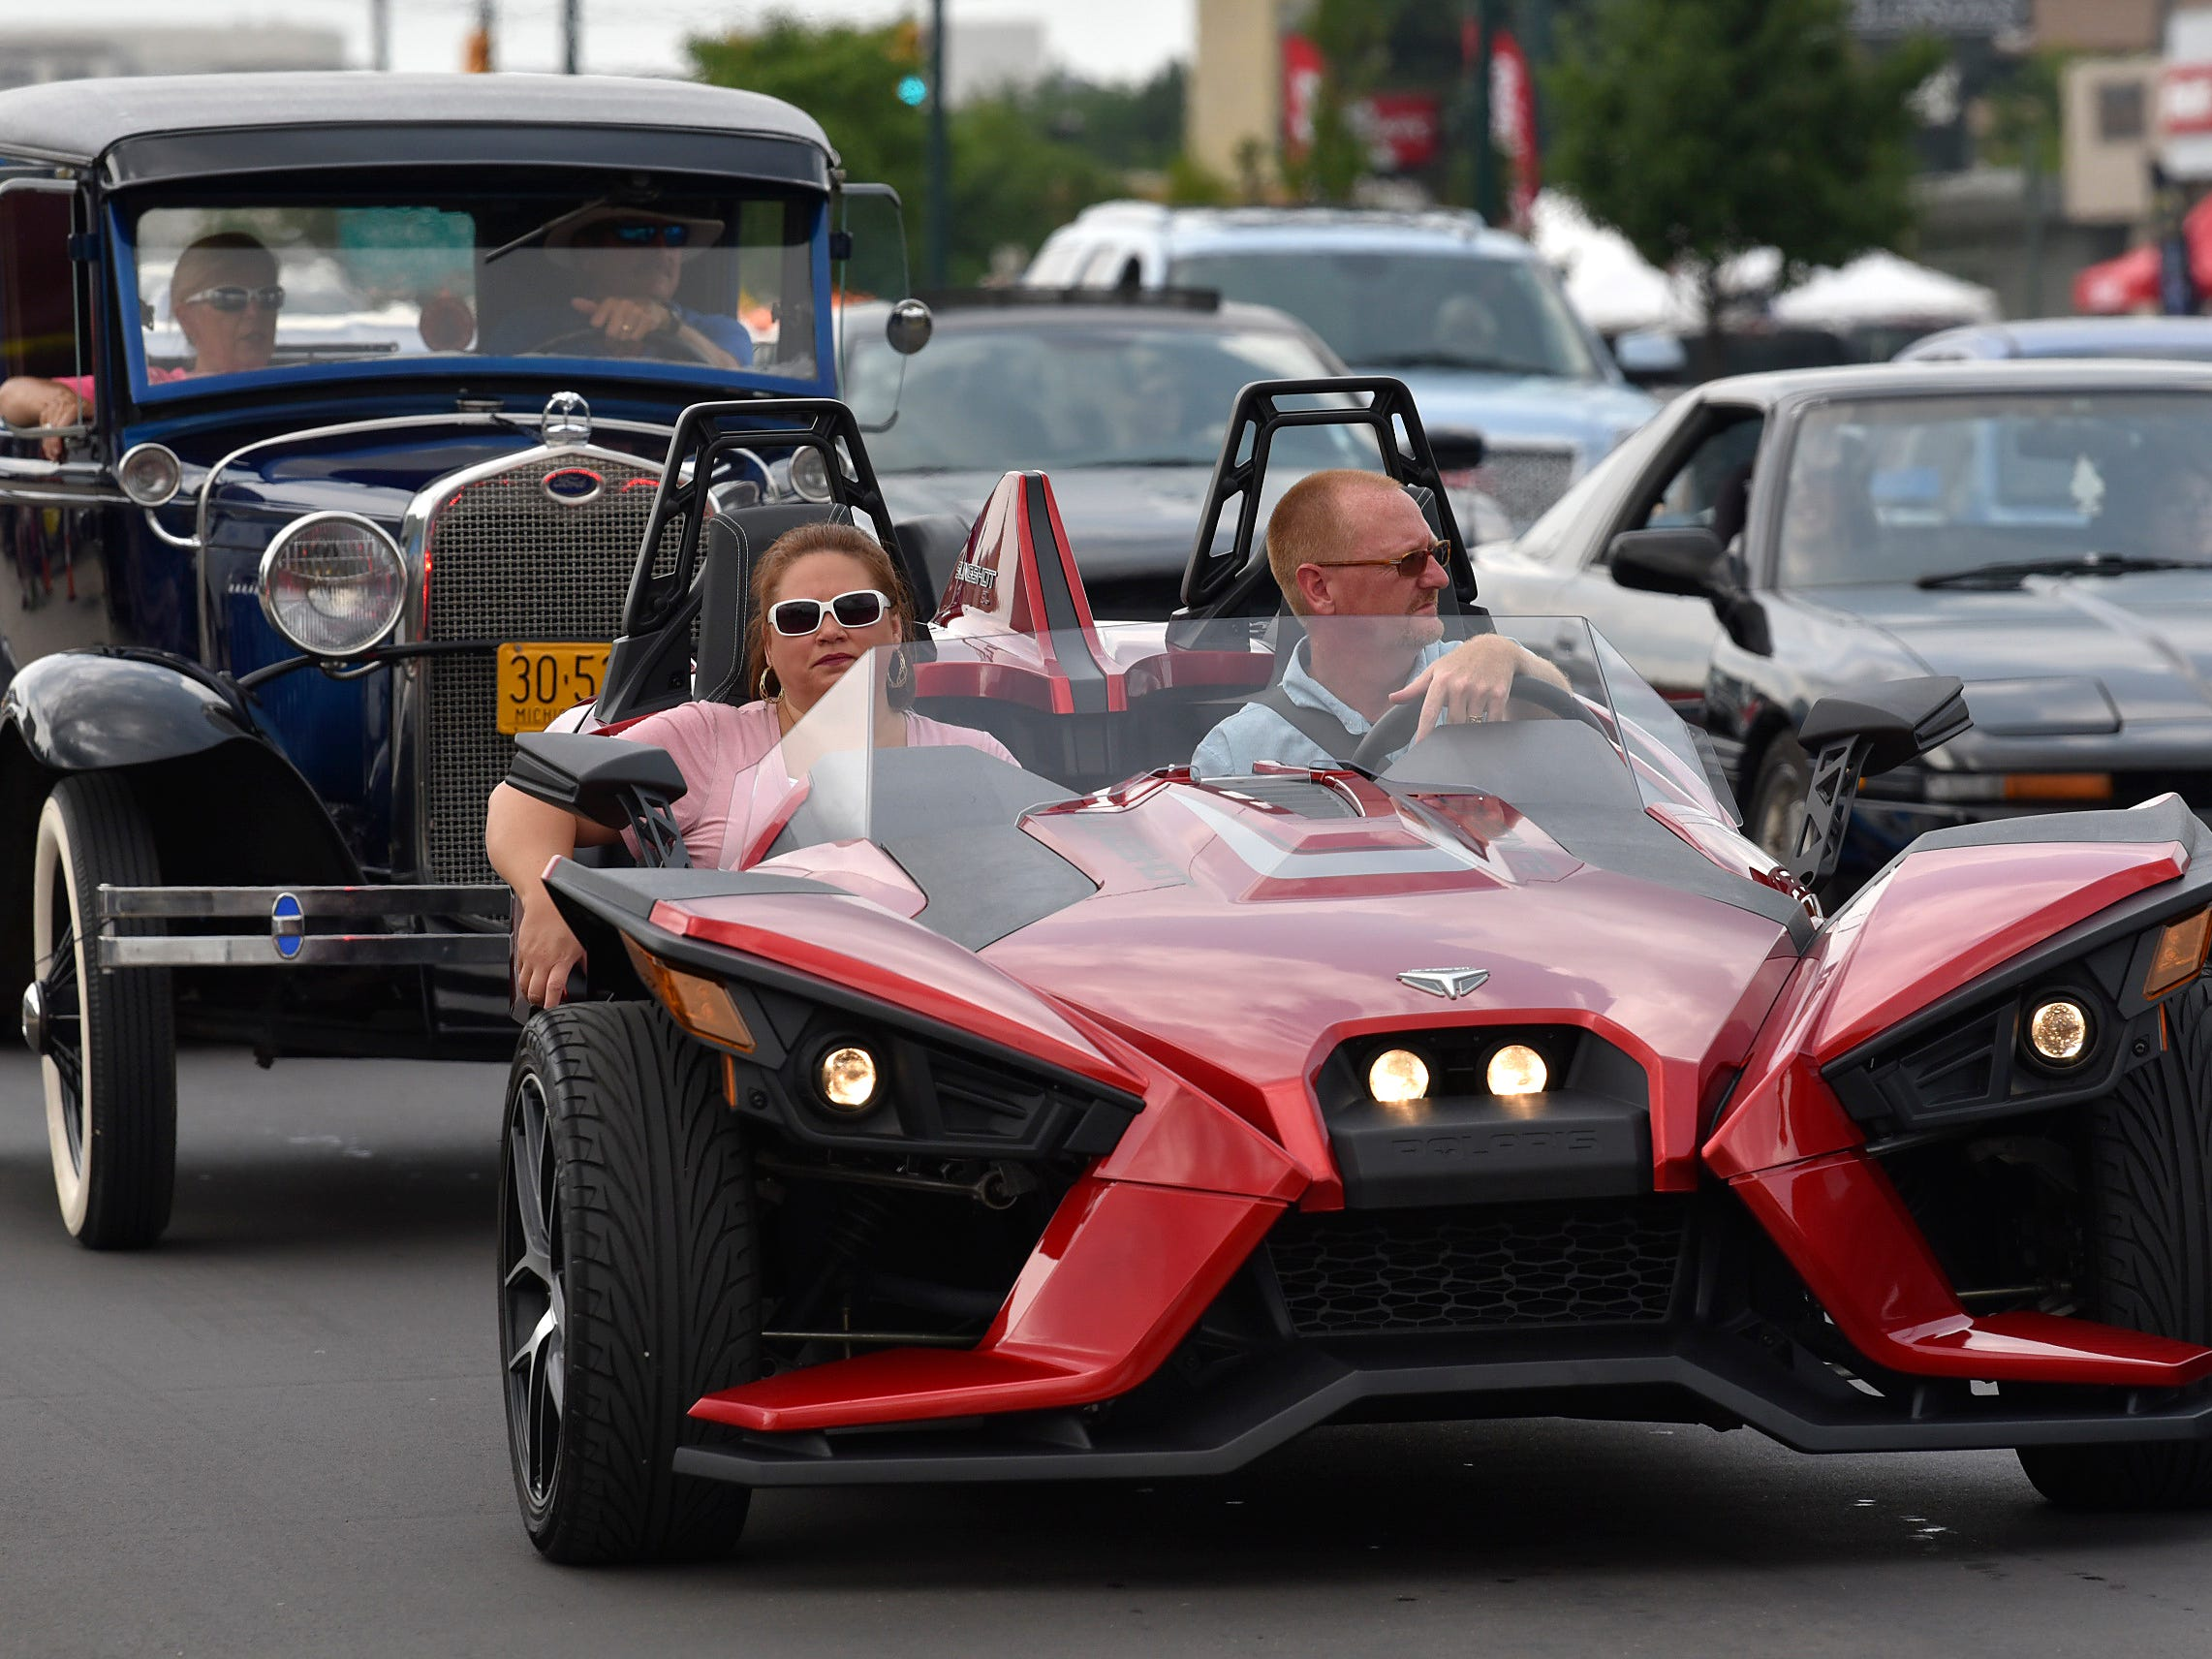 This 2017 Polaris Slingshot is followed by a 1930 Model A Ford.